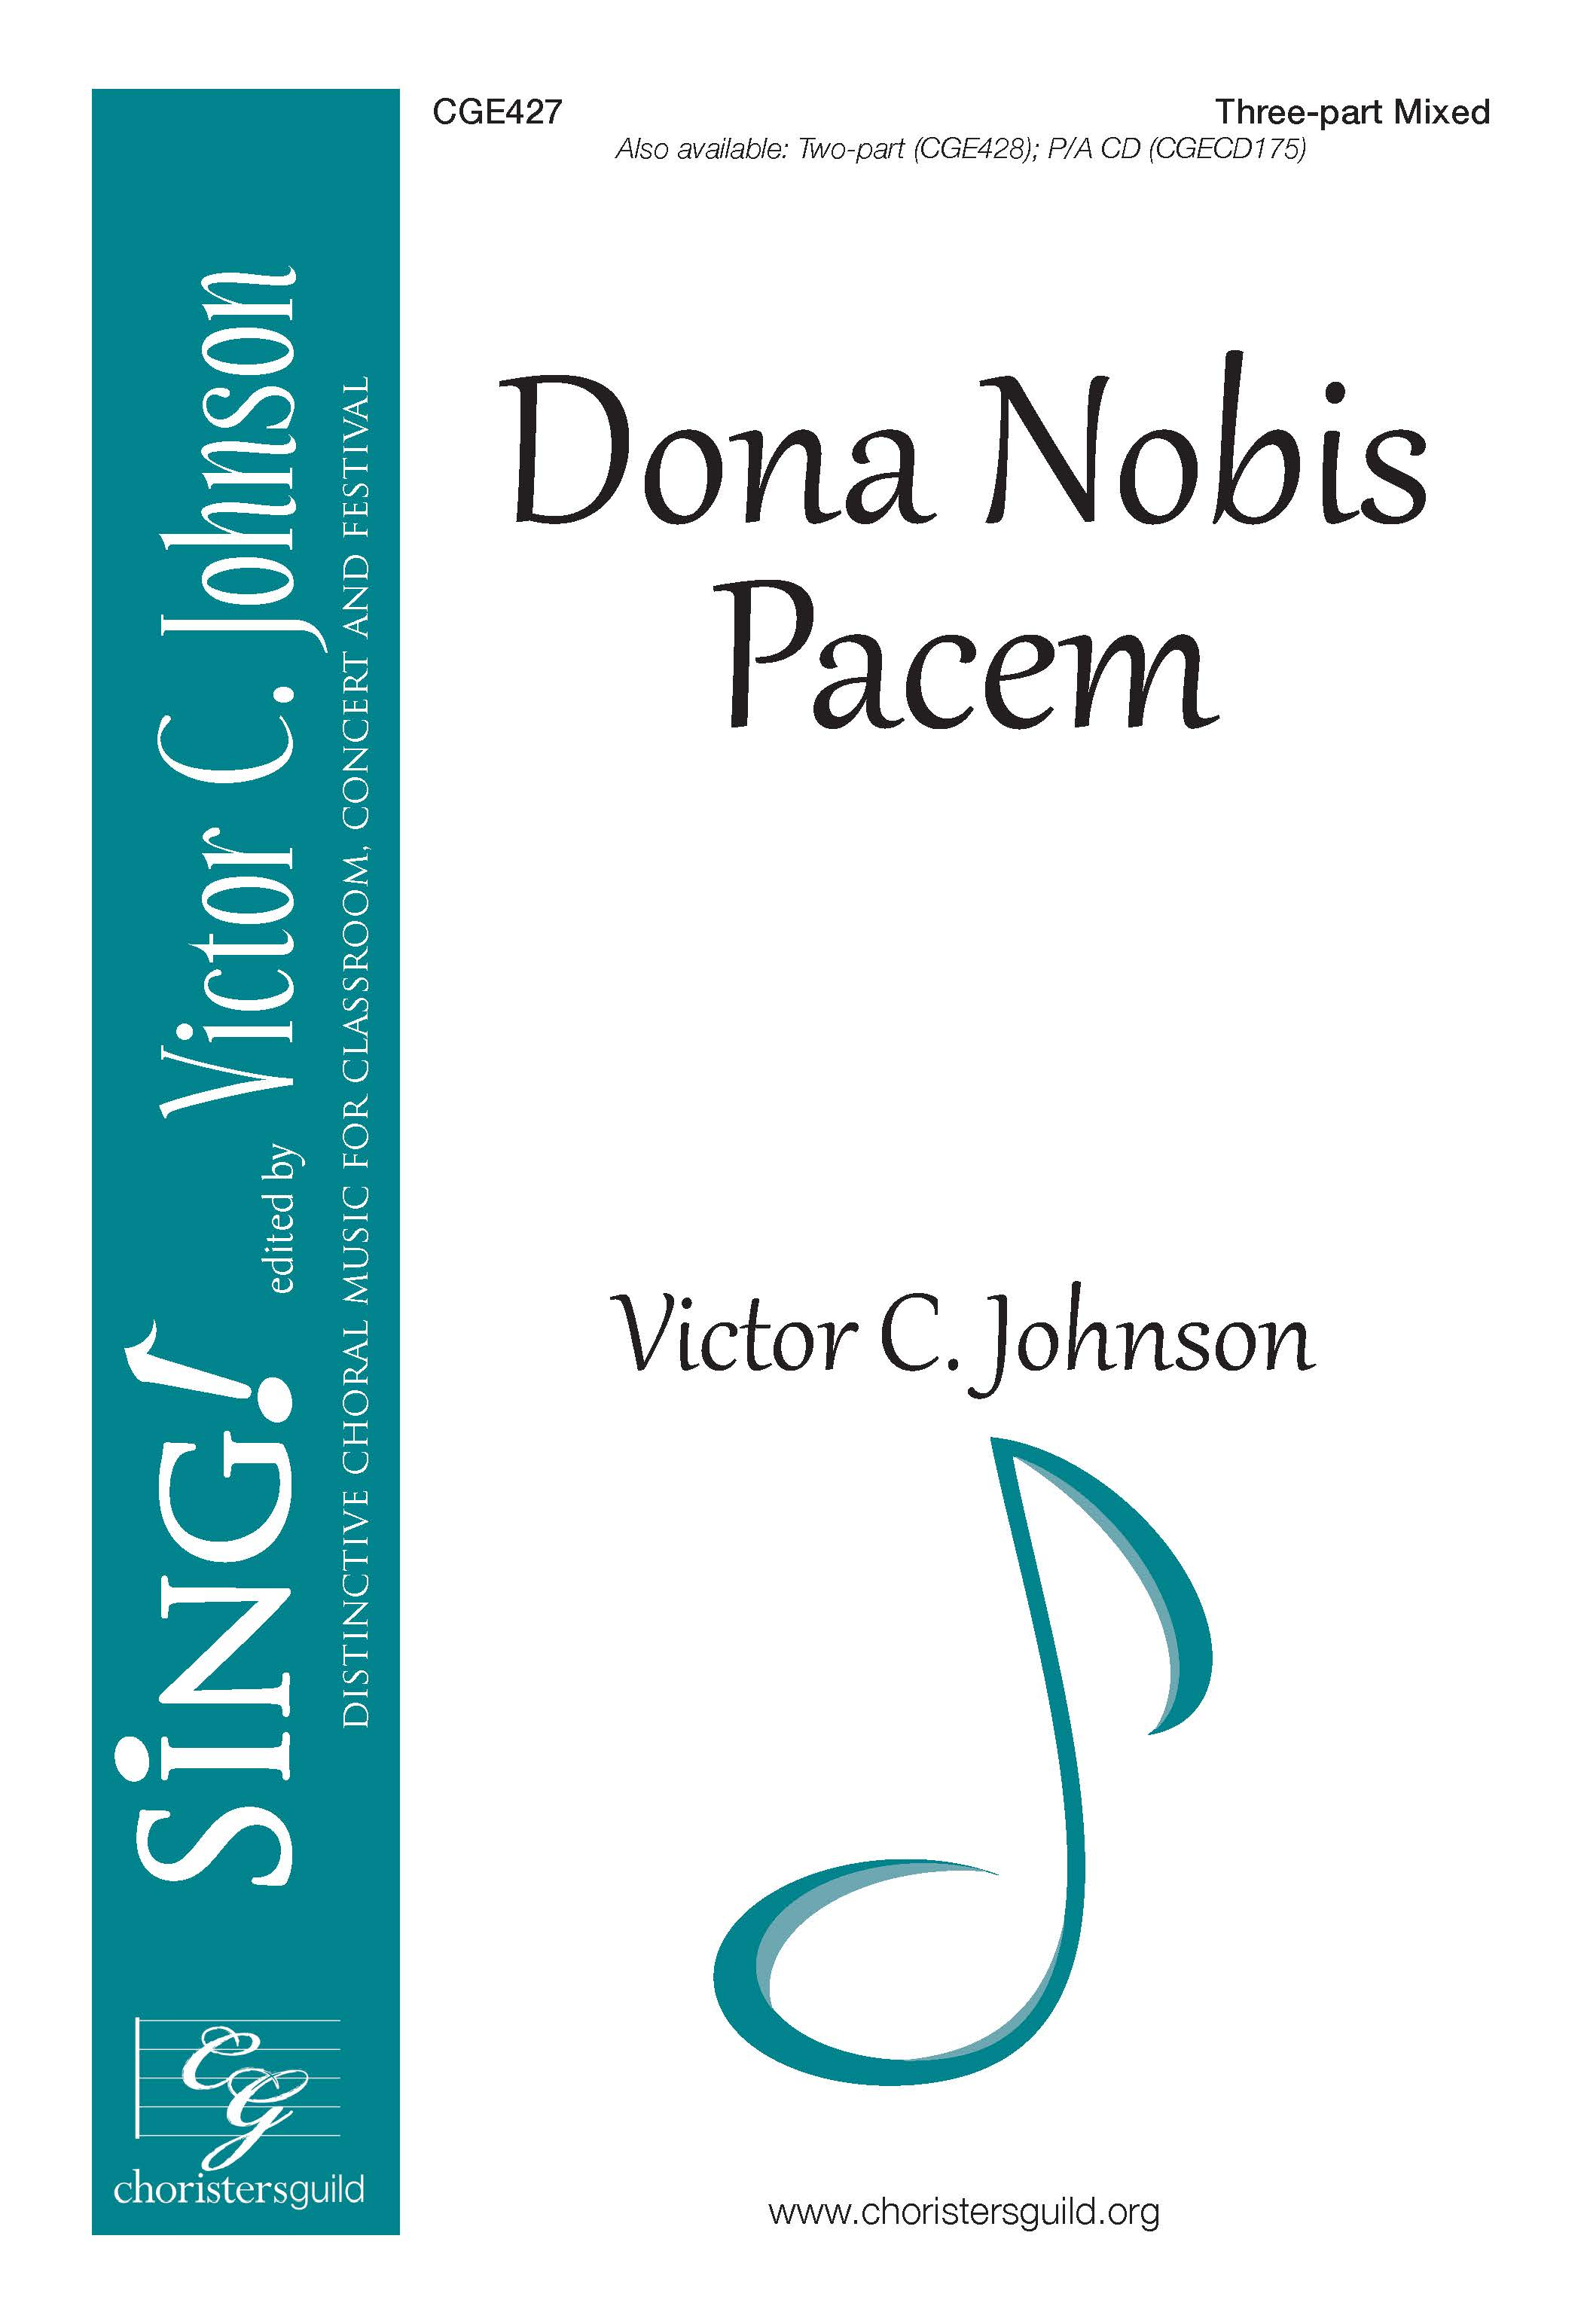 Dona Nobis Pacem - Three-part Mixed